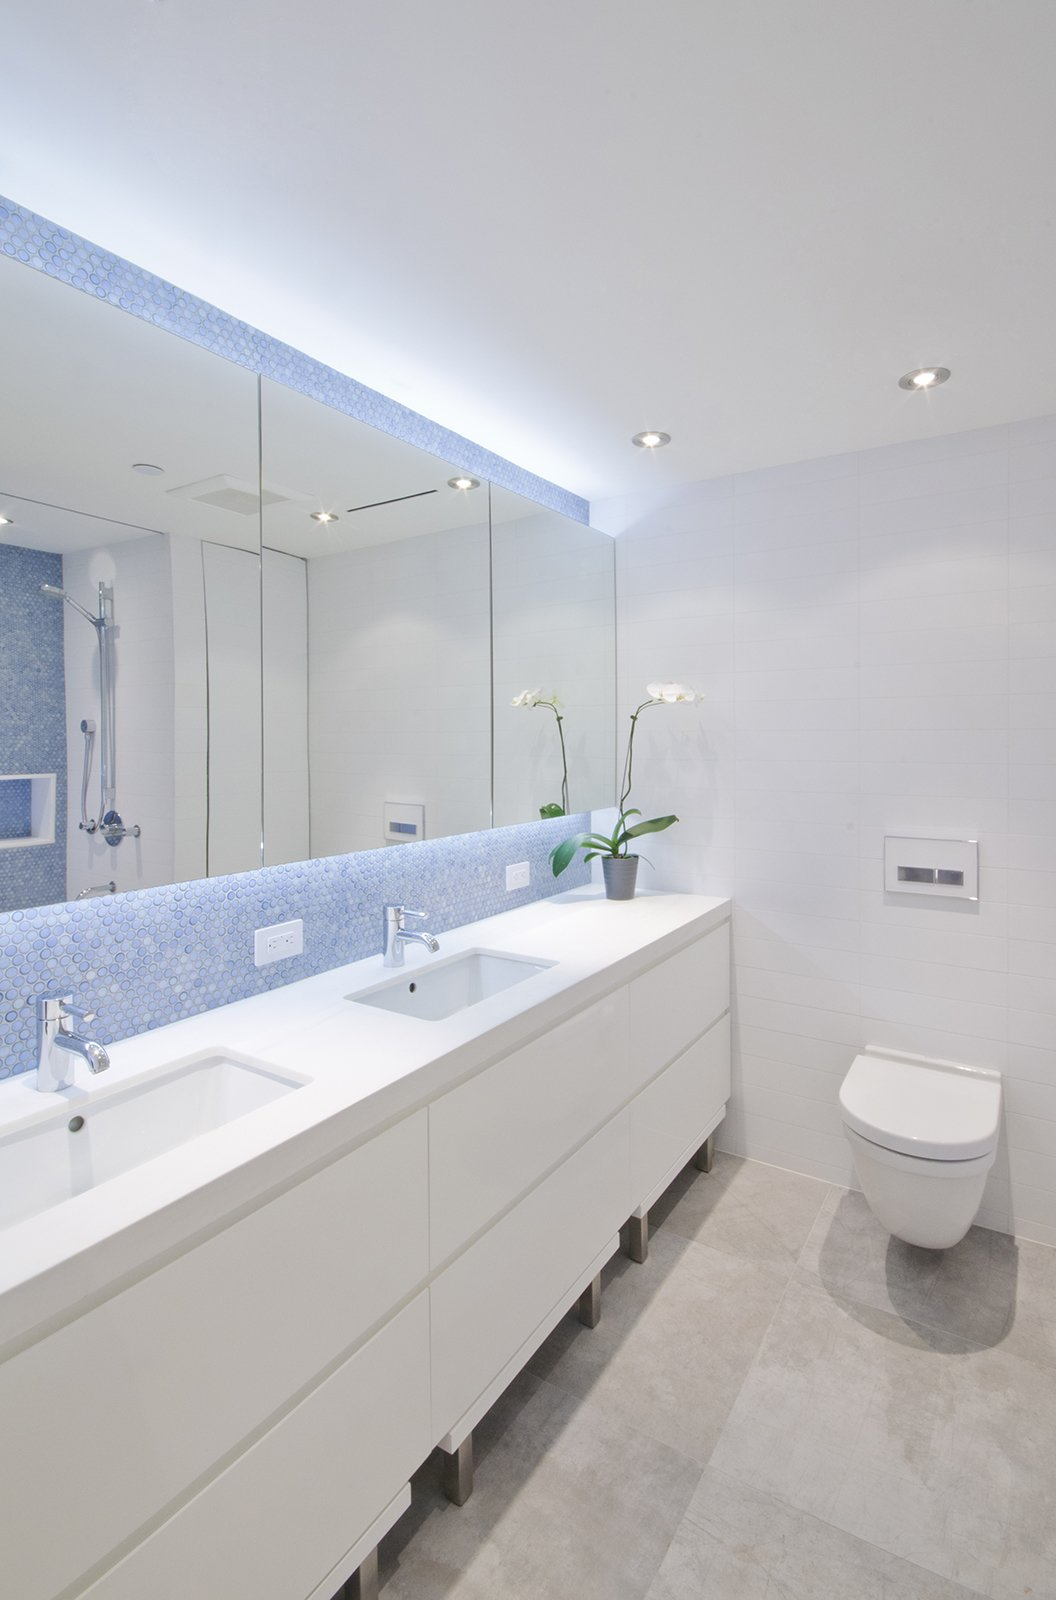 """Bath Room, Recessed Lighting, Accent Lighting, One Piece Toilet, Ceramic Tile Wall, and Undermount Sink In addition to a playroom, the children share a bathroom. """"In a kids' bathroom, it's nice to have a little bit more fun,"""" Miller says. """"The penny tiles are really nice because they are really inexpensive and have a nice blue delicateness to them."""" A neutral palette of whites and grays is used throughout the rest of the space to make the blue penny tiles stand out. Footstools are nestled underneath the cabinets so the kids can access the sink easily.  A Renovated Tribeca Loft with a Modern Aesthetic by Monique Valeris"""